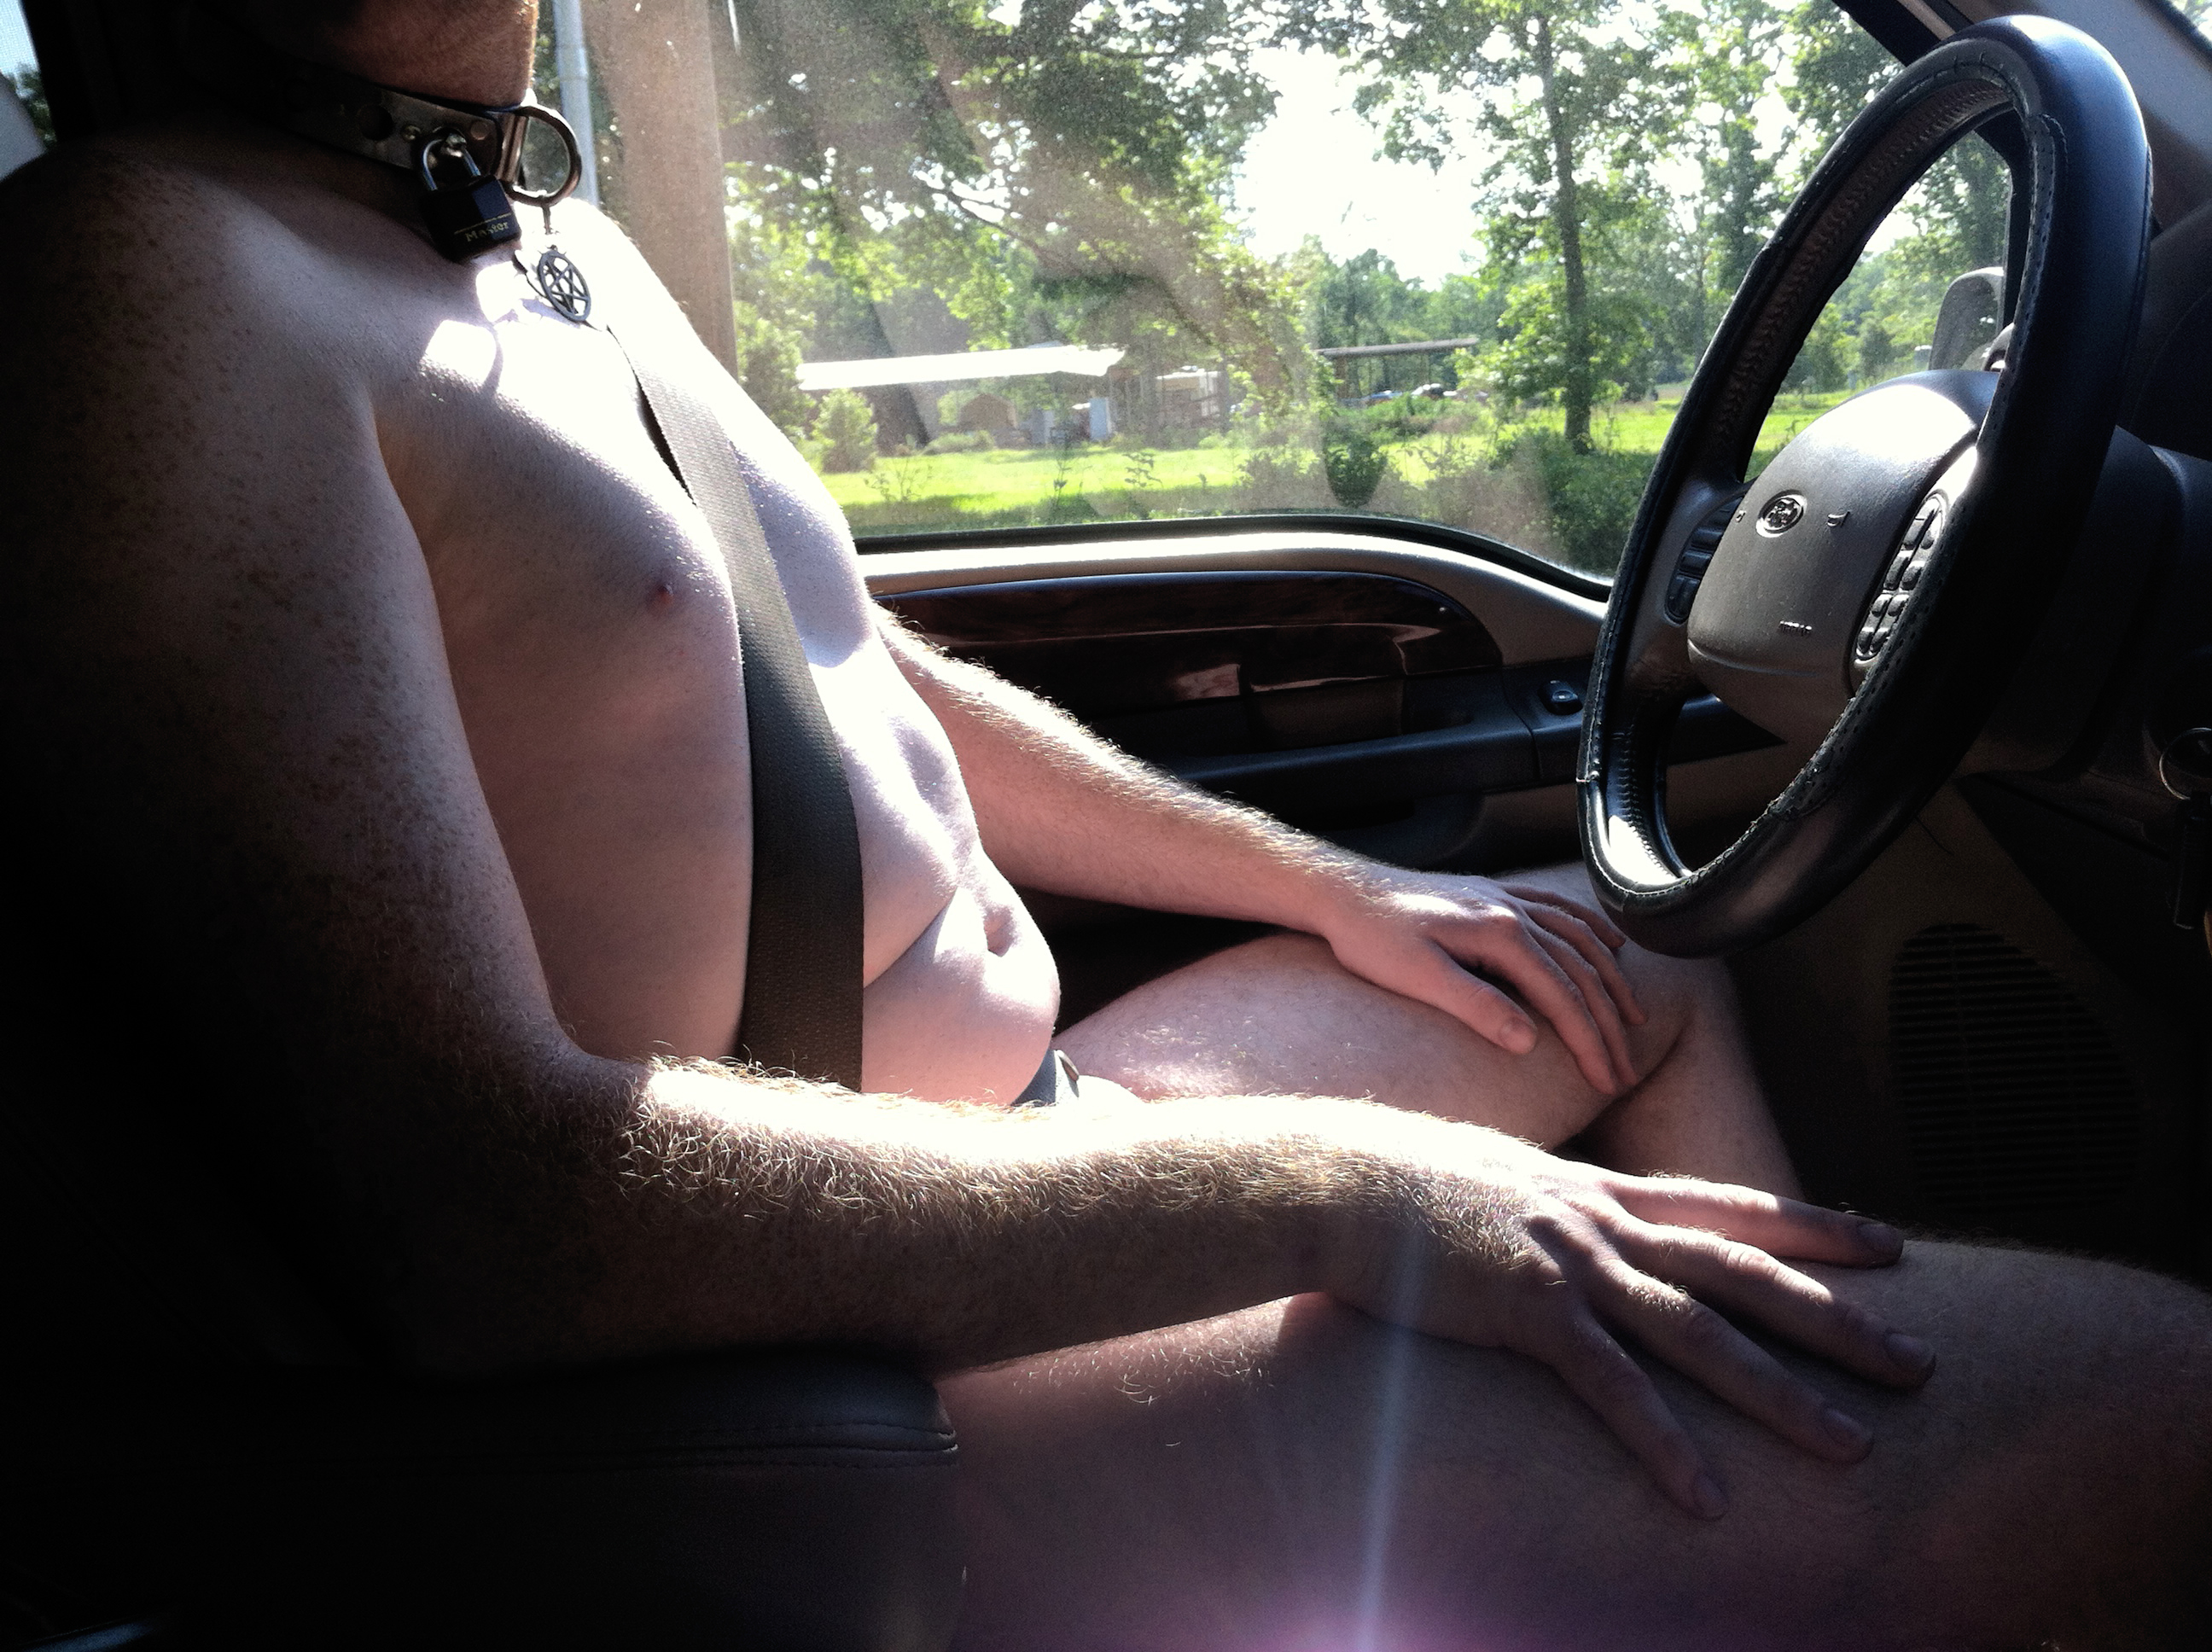 Nude Driving